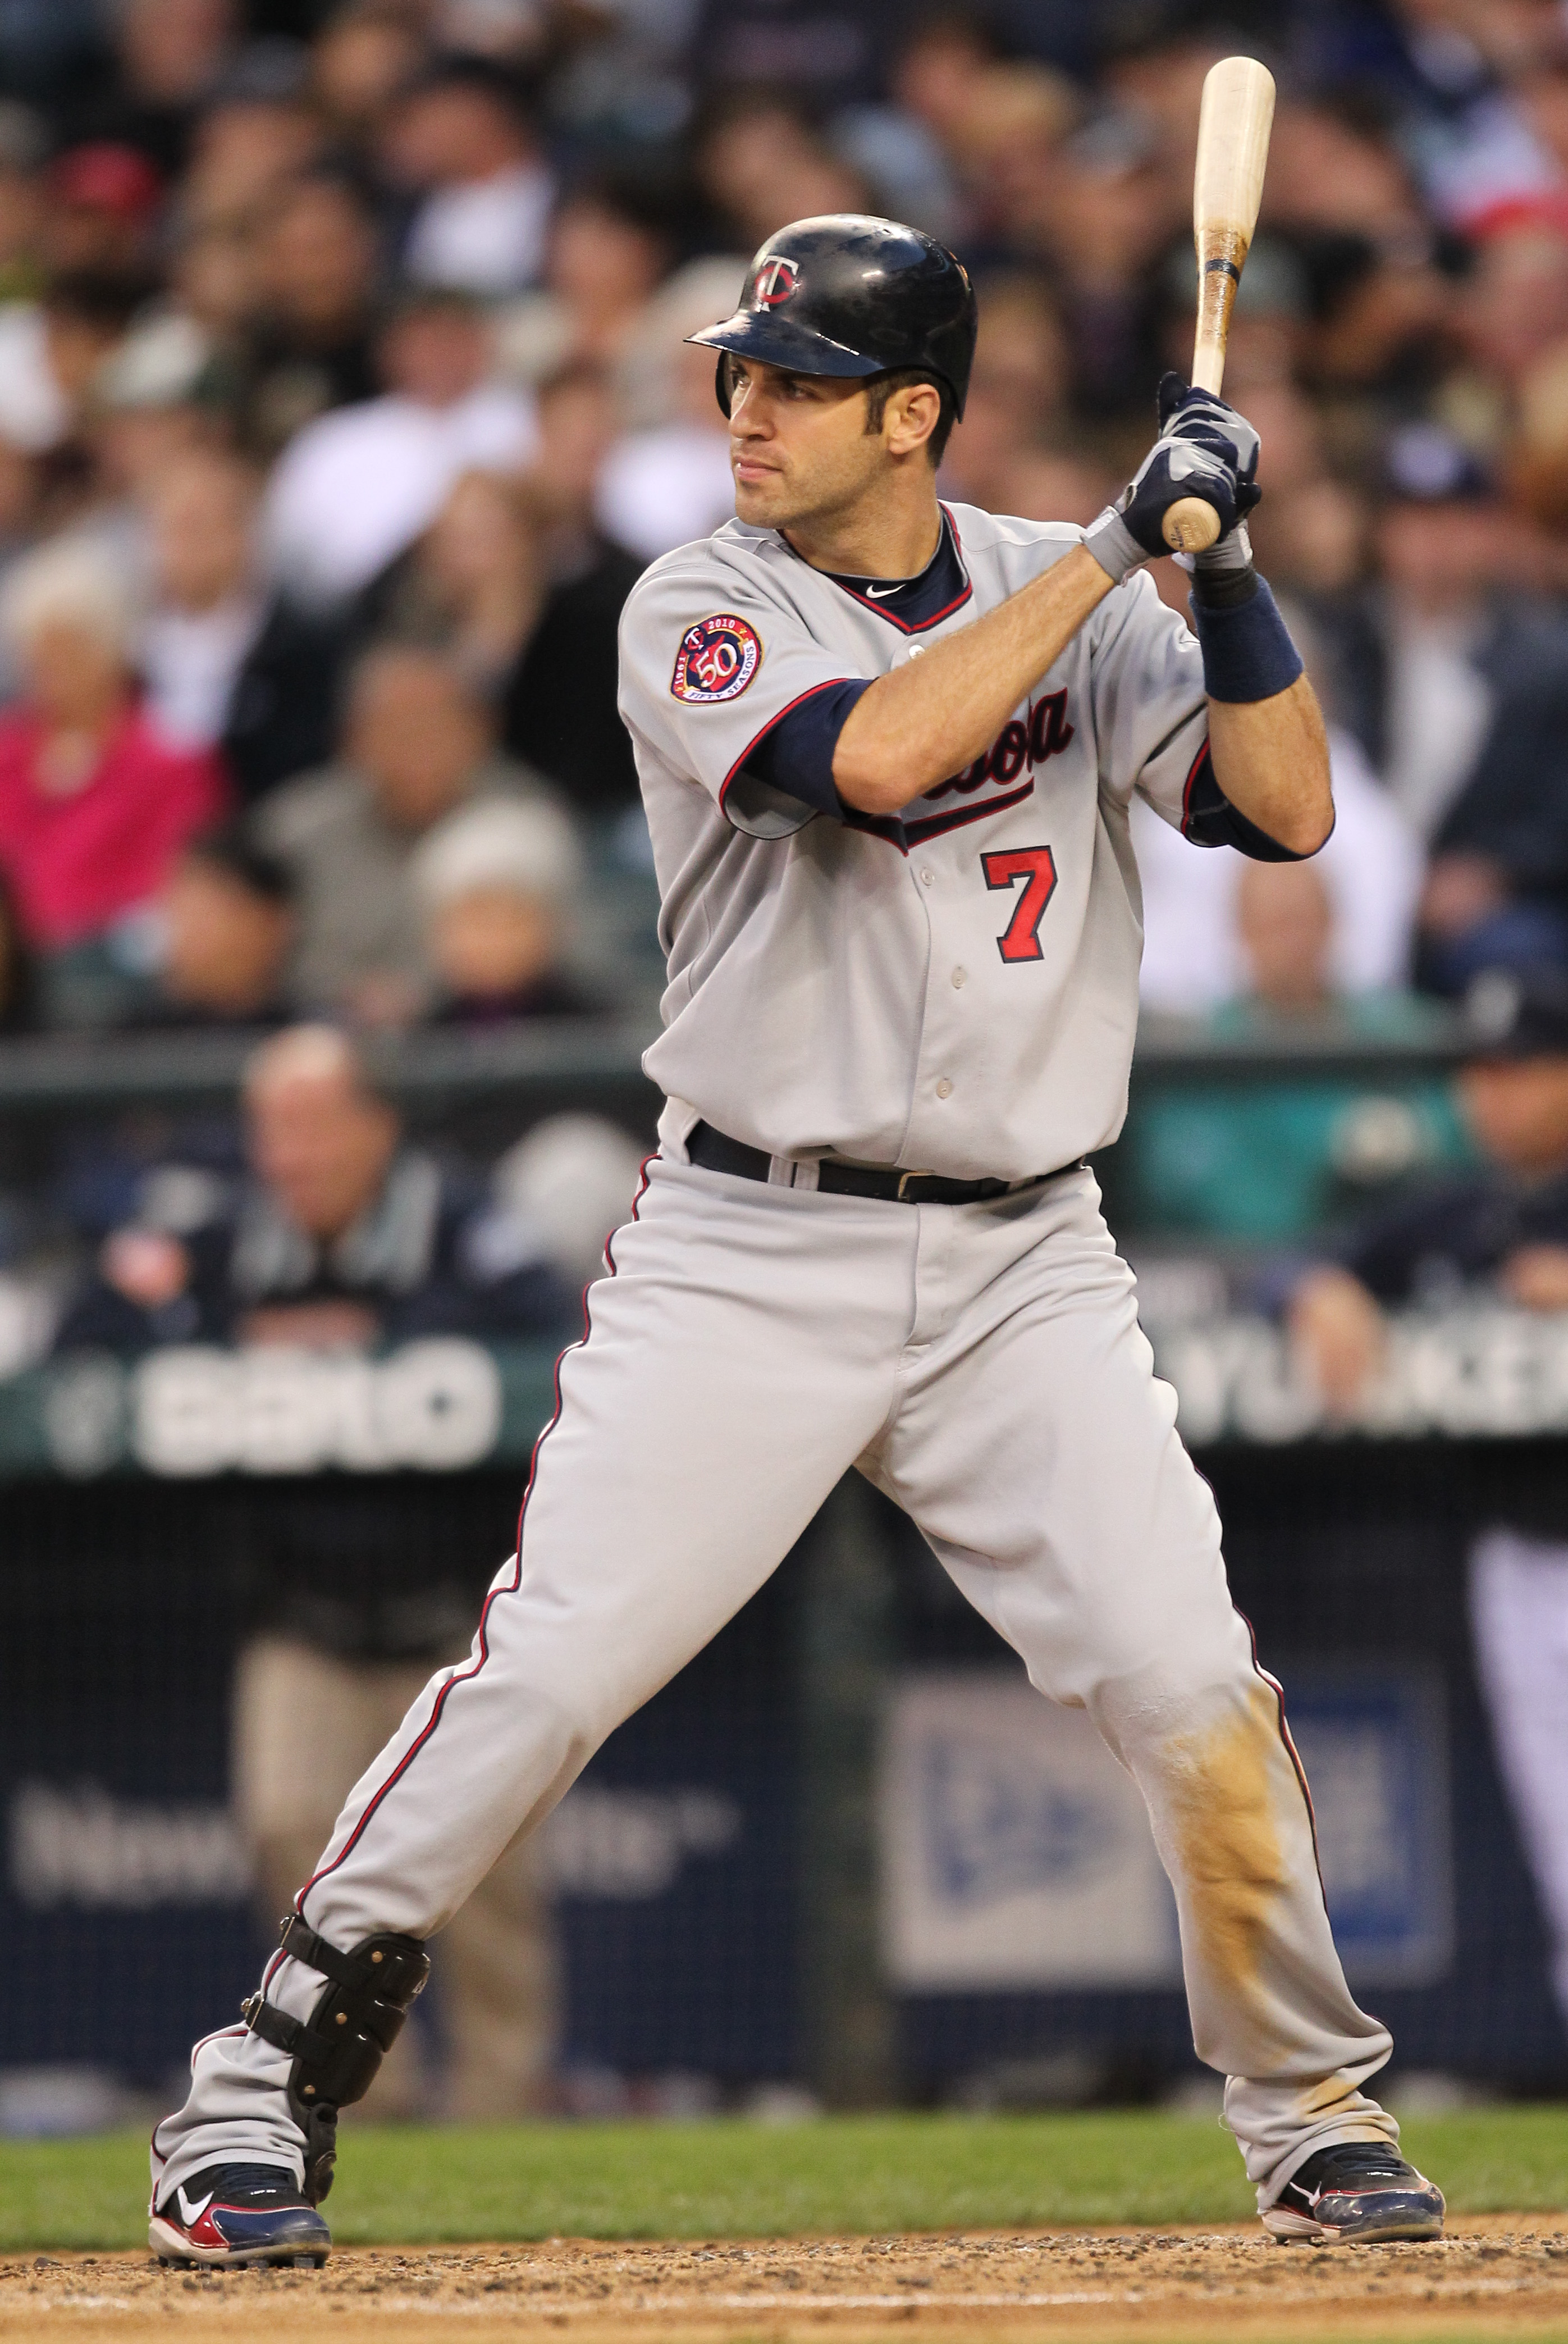 SEATTLE - AUGUST 27:  Joe Mauer #7 of the Minnesota Twins bats against the Seattle Mariners at Safeco Field on August 27, 2010 in Seattle, Washington. The Twins won 6-3. (Photo by Otto Greule Jr/Getty Images)